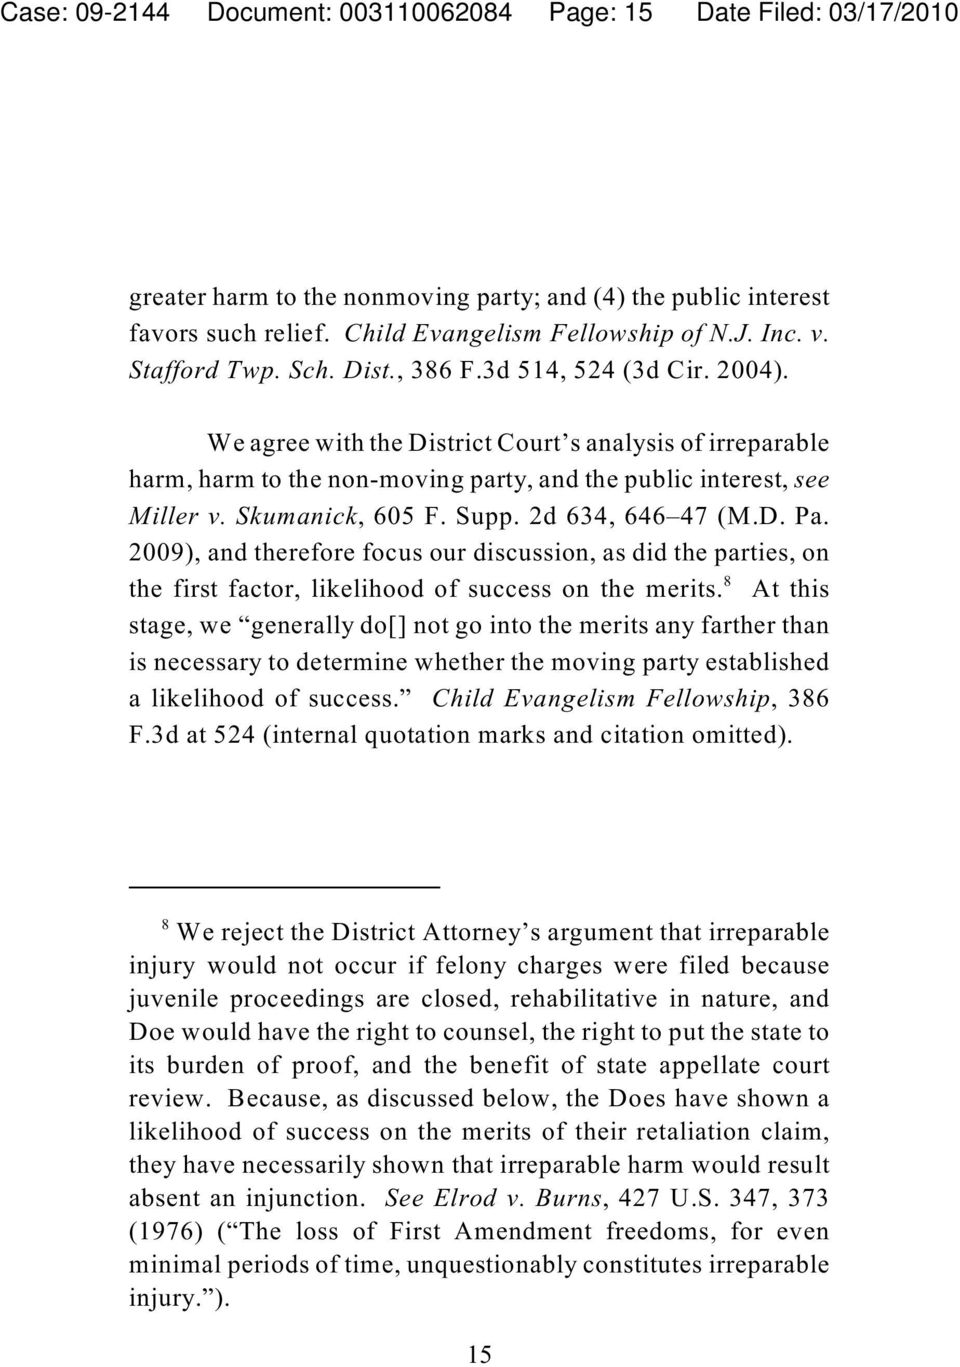 Skumanick, 605 F. Supp. 2d 634, 646 47 (M.D. Pa. 2009), and therefore focus our discussion, as did the parties, on 8 the first factor, likelihood of success on the merits.